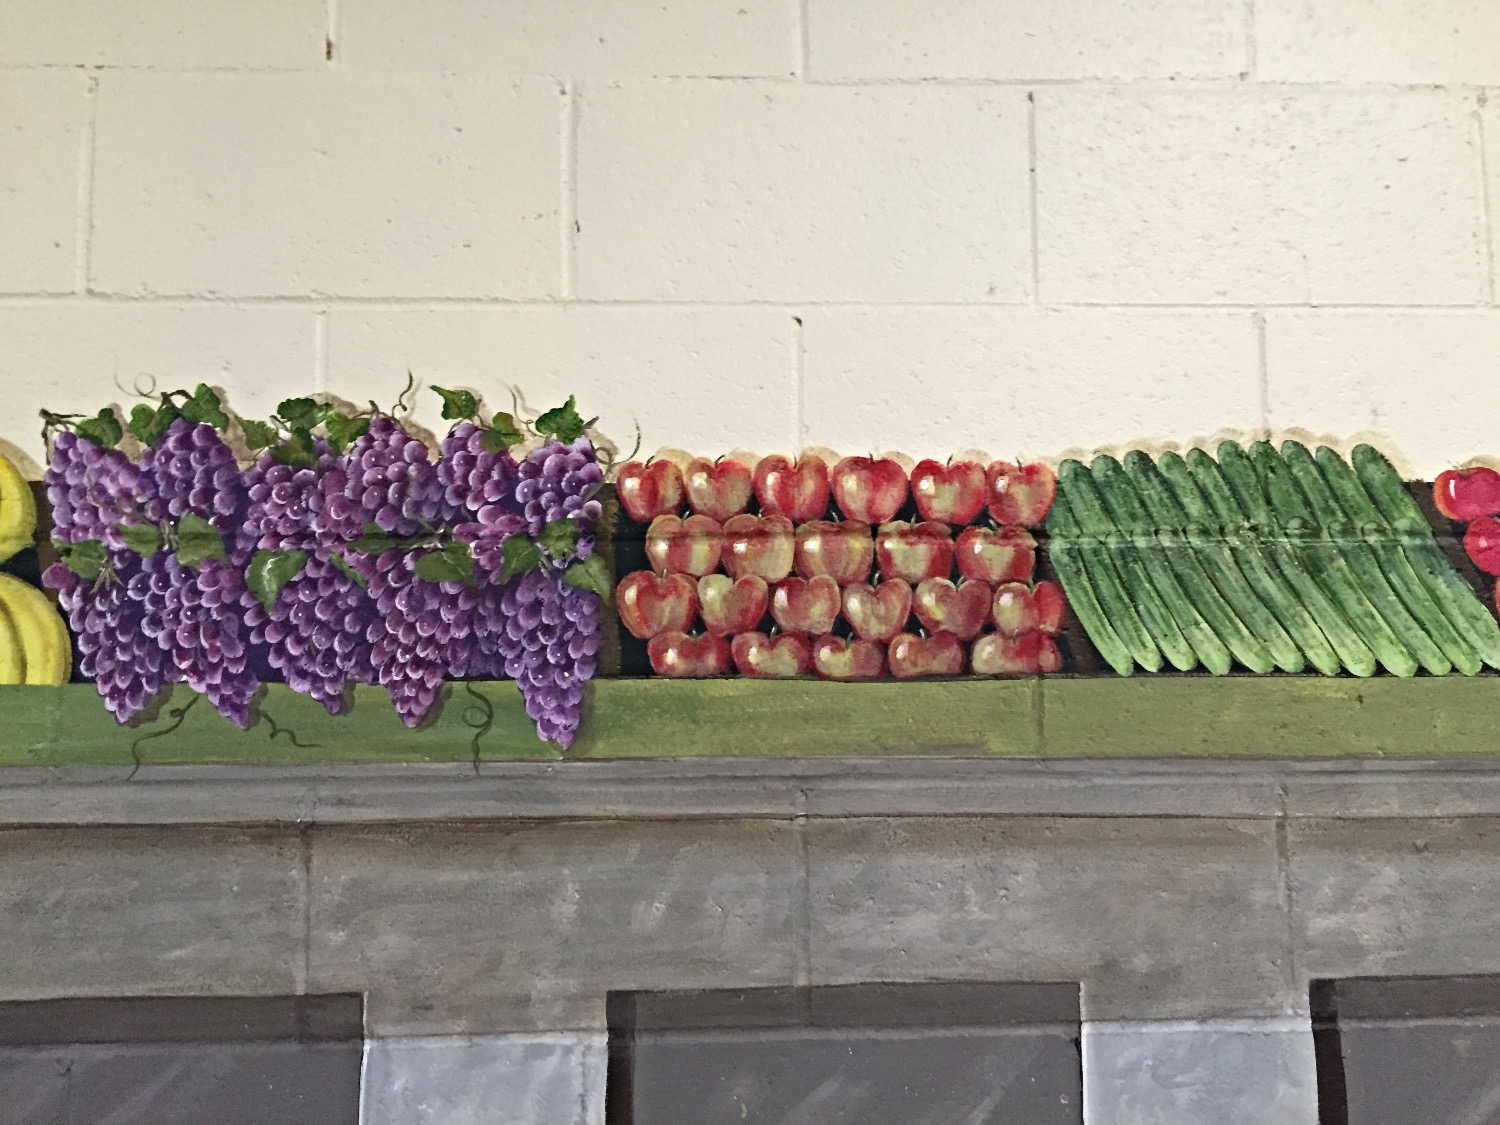 Close up of produce stand